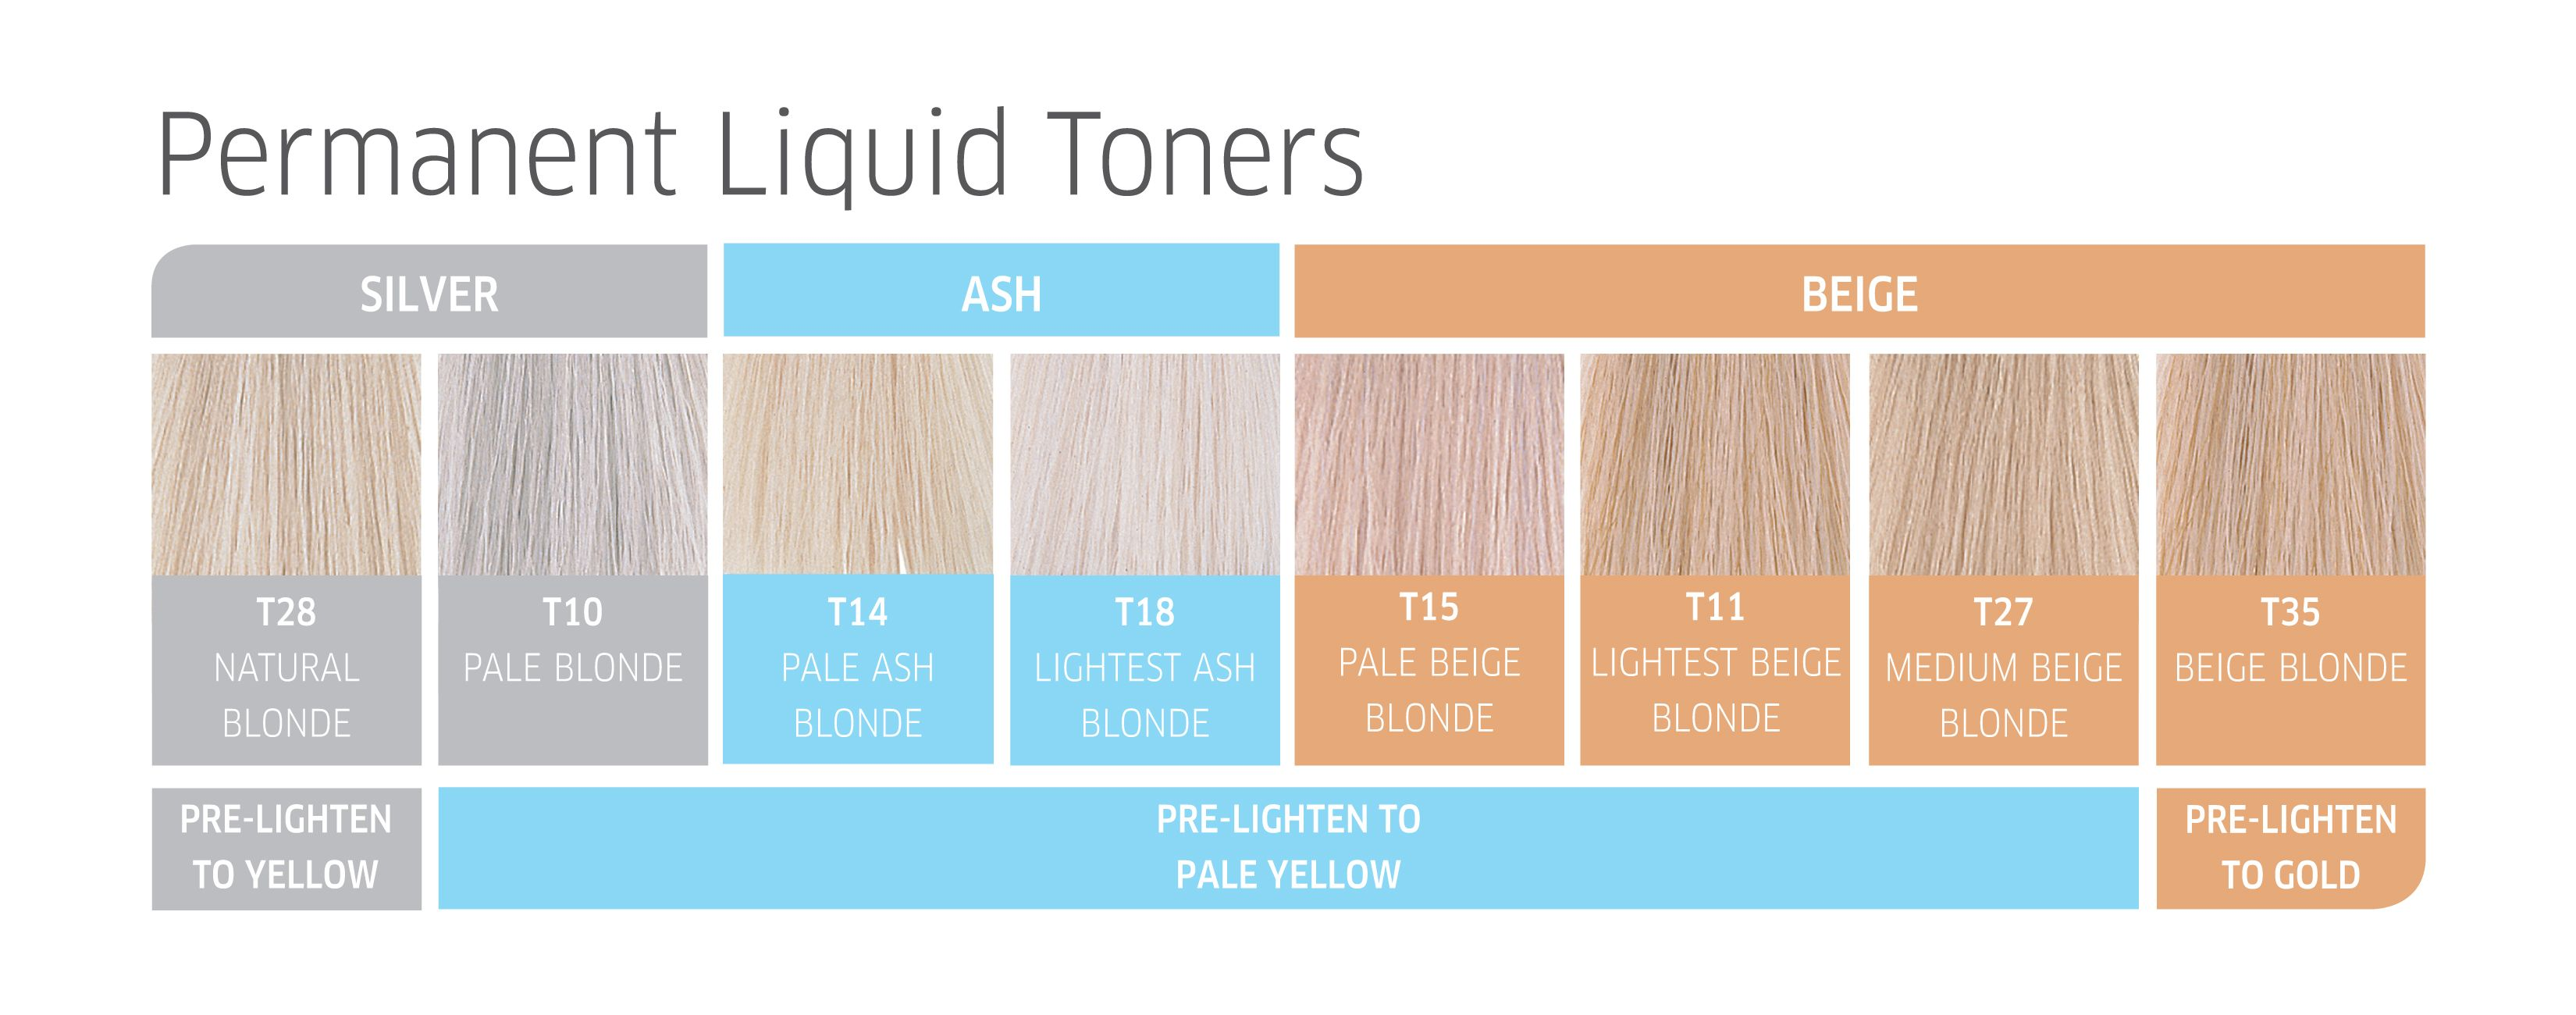 Wella permanent liquid toners also lush  locks hair dyed rh pinterest